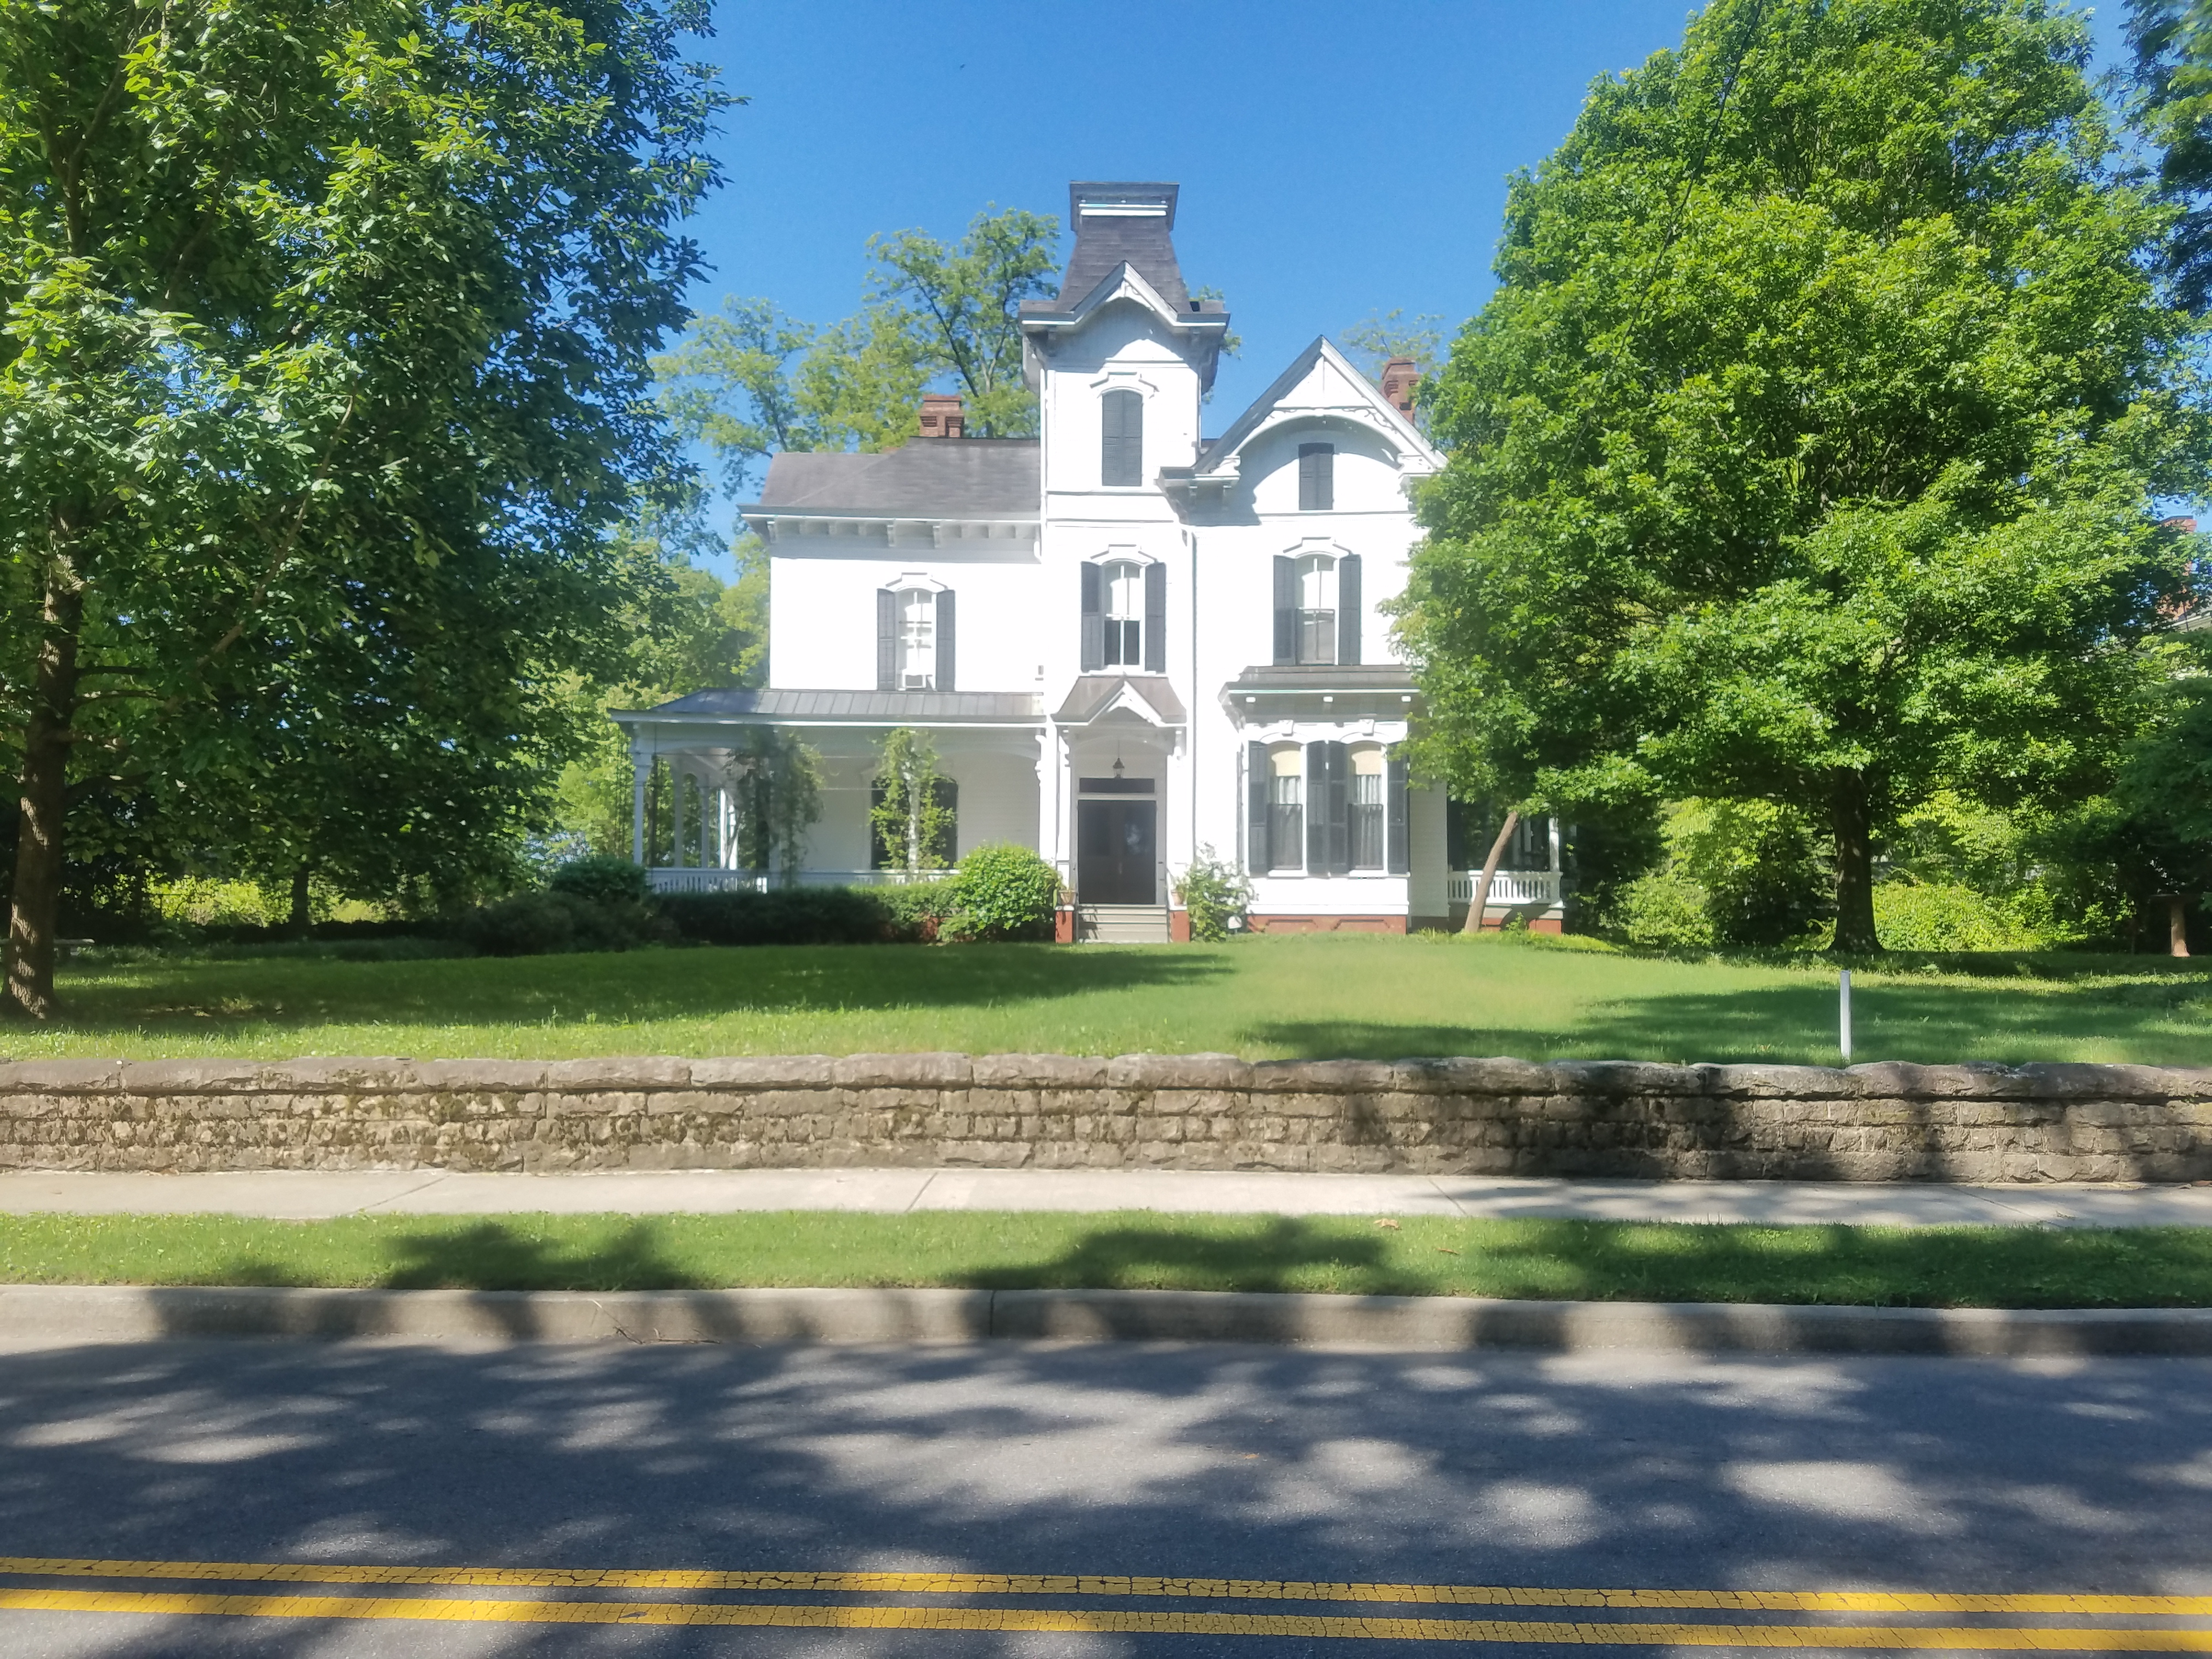 Brumby-Sibley-Corley House